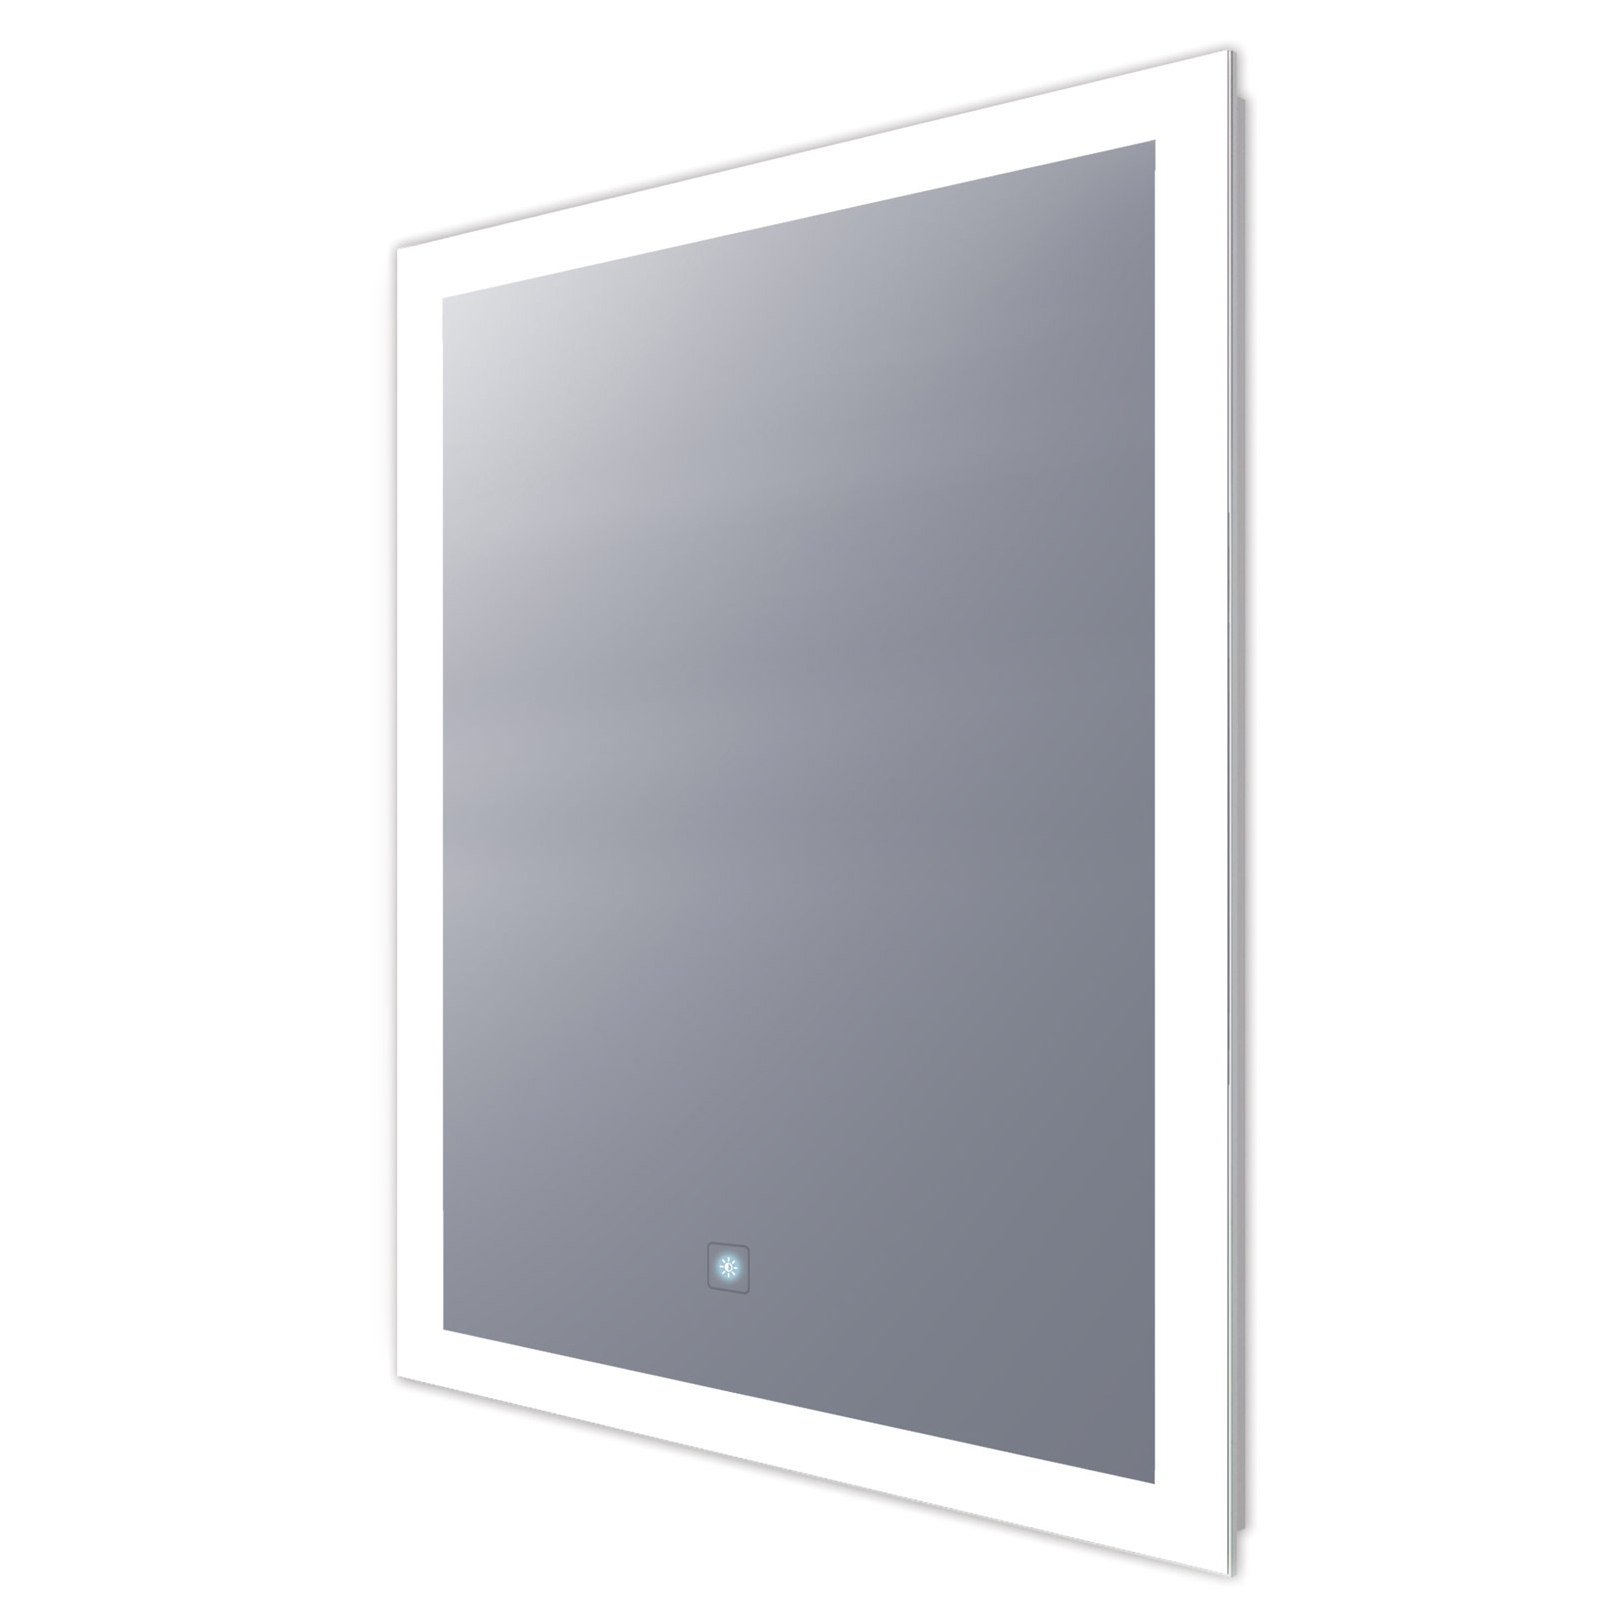 1618x1618 Rectangle Lighted Mirror With Keen Dimming By Electric Mirror